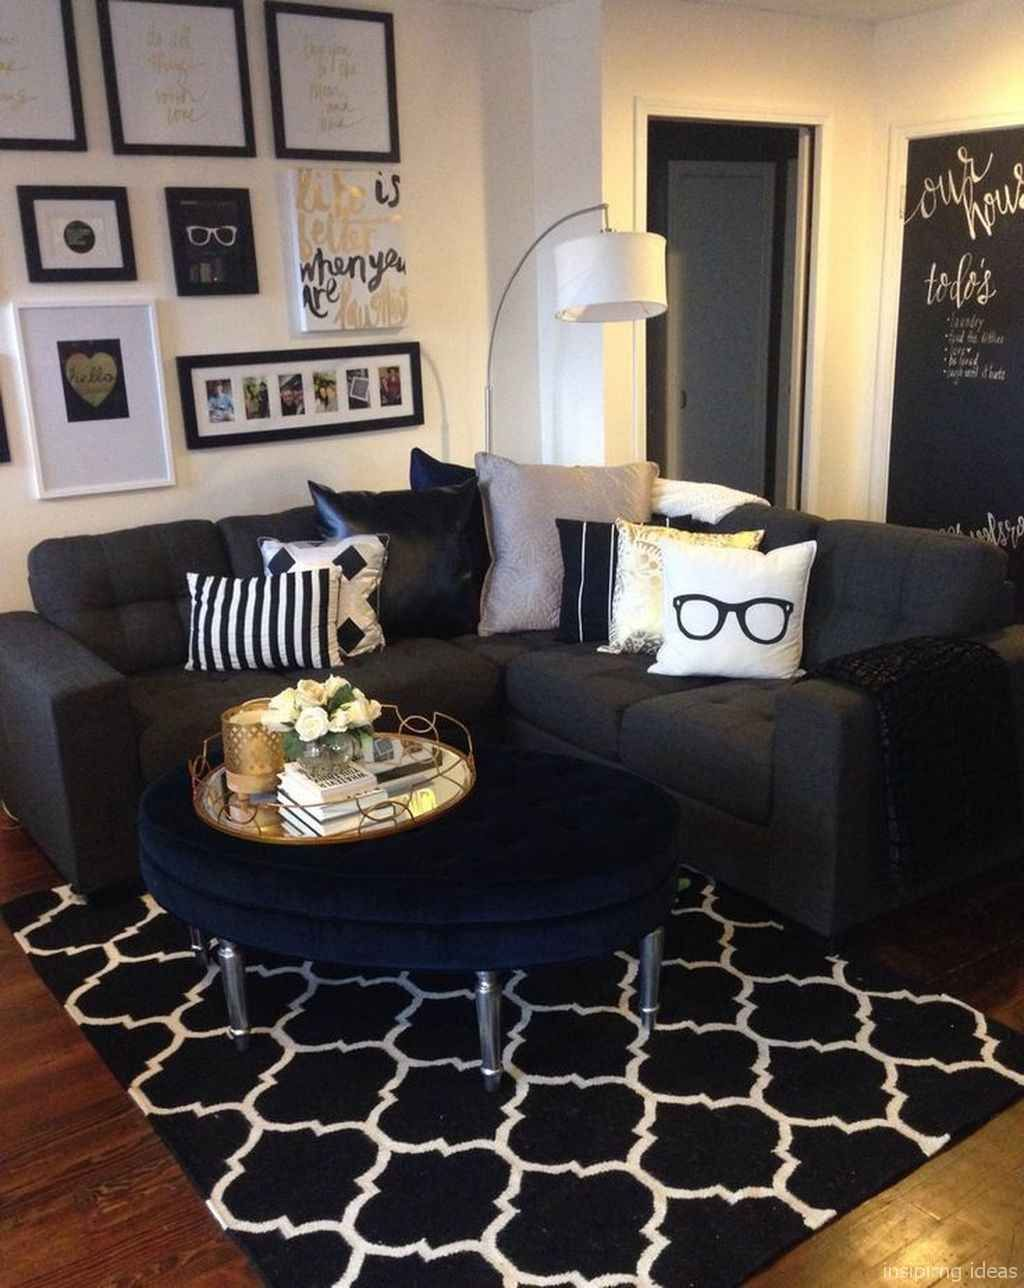 Cozy Modern Apartment Living Room Decorating Ideas On A Budget 03 Living Room Decor Apartment First Apartment Decorating Apartment Decorating Rental